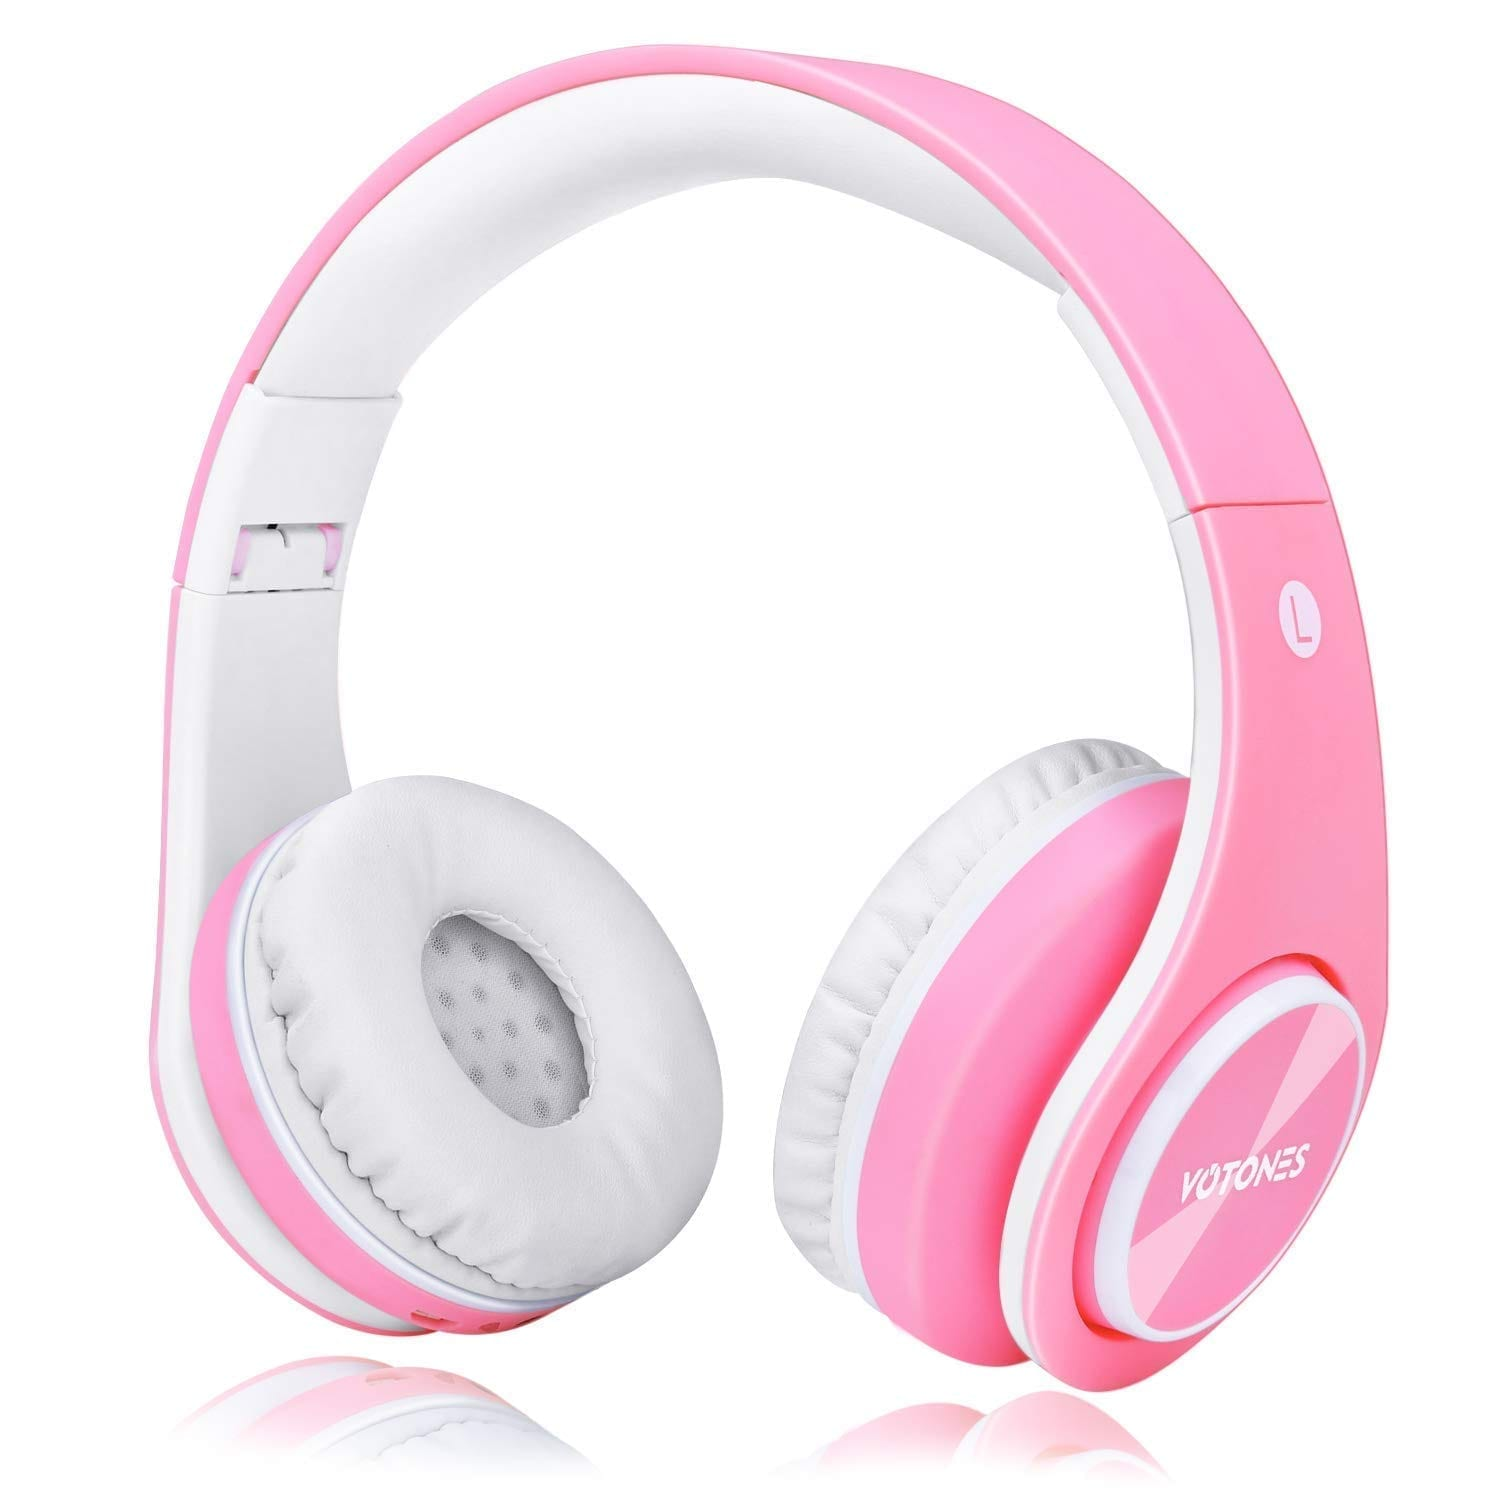 Votones Girls Bluetooth Headphone